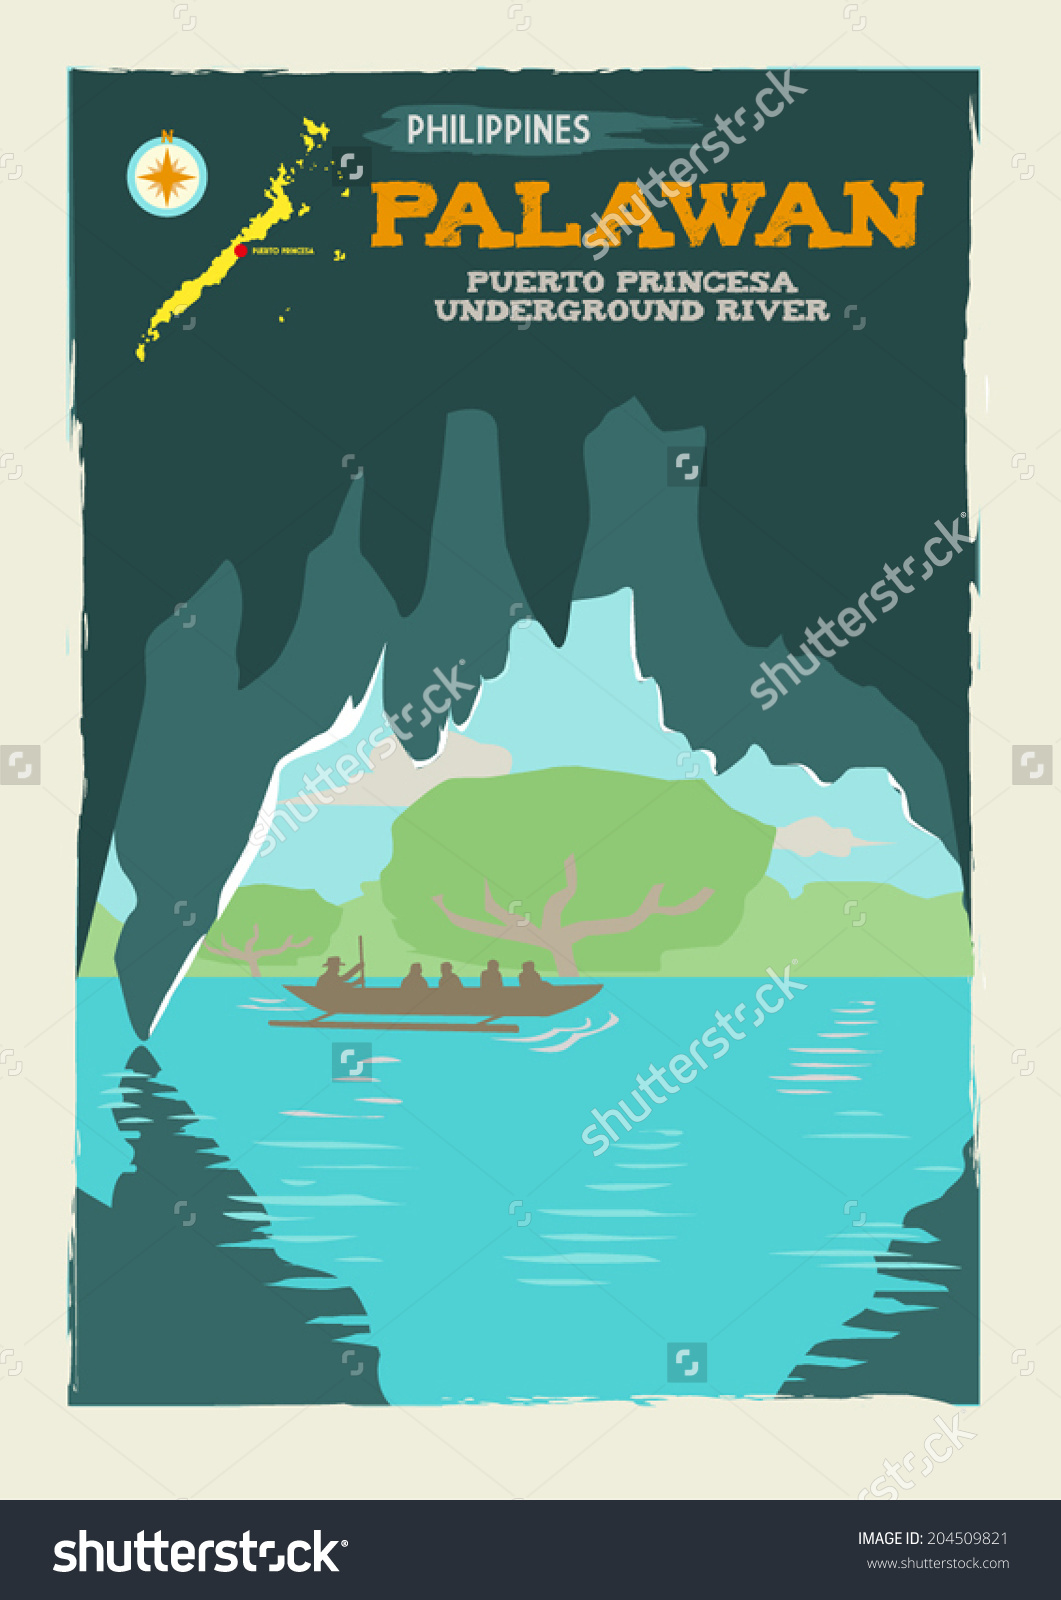 Puerto Princesa Underground River Palawan Philippines Stock Vector.